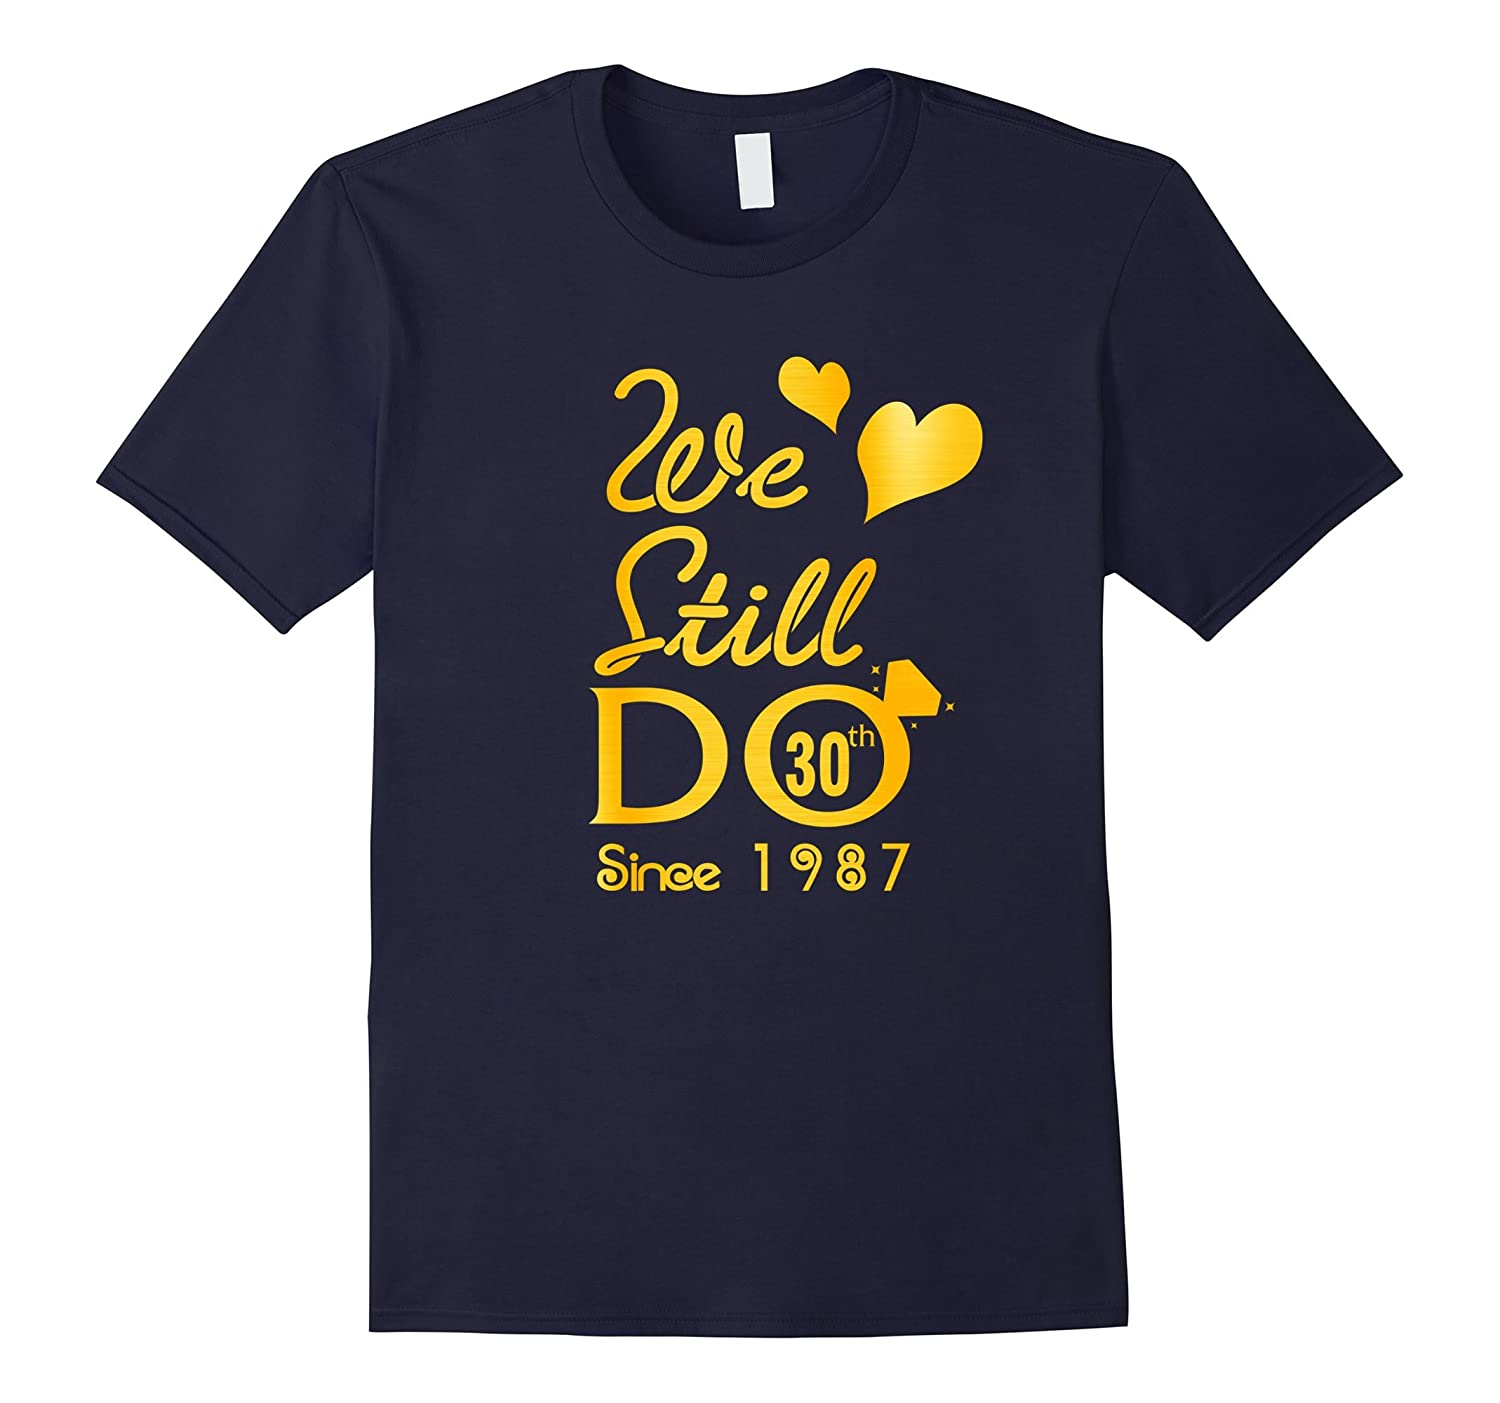 30th Wedding Anniversary Tshirt We Still Do Gifts for Couple-TH